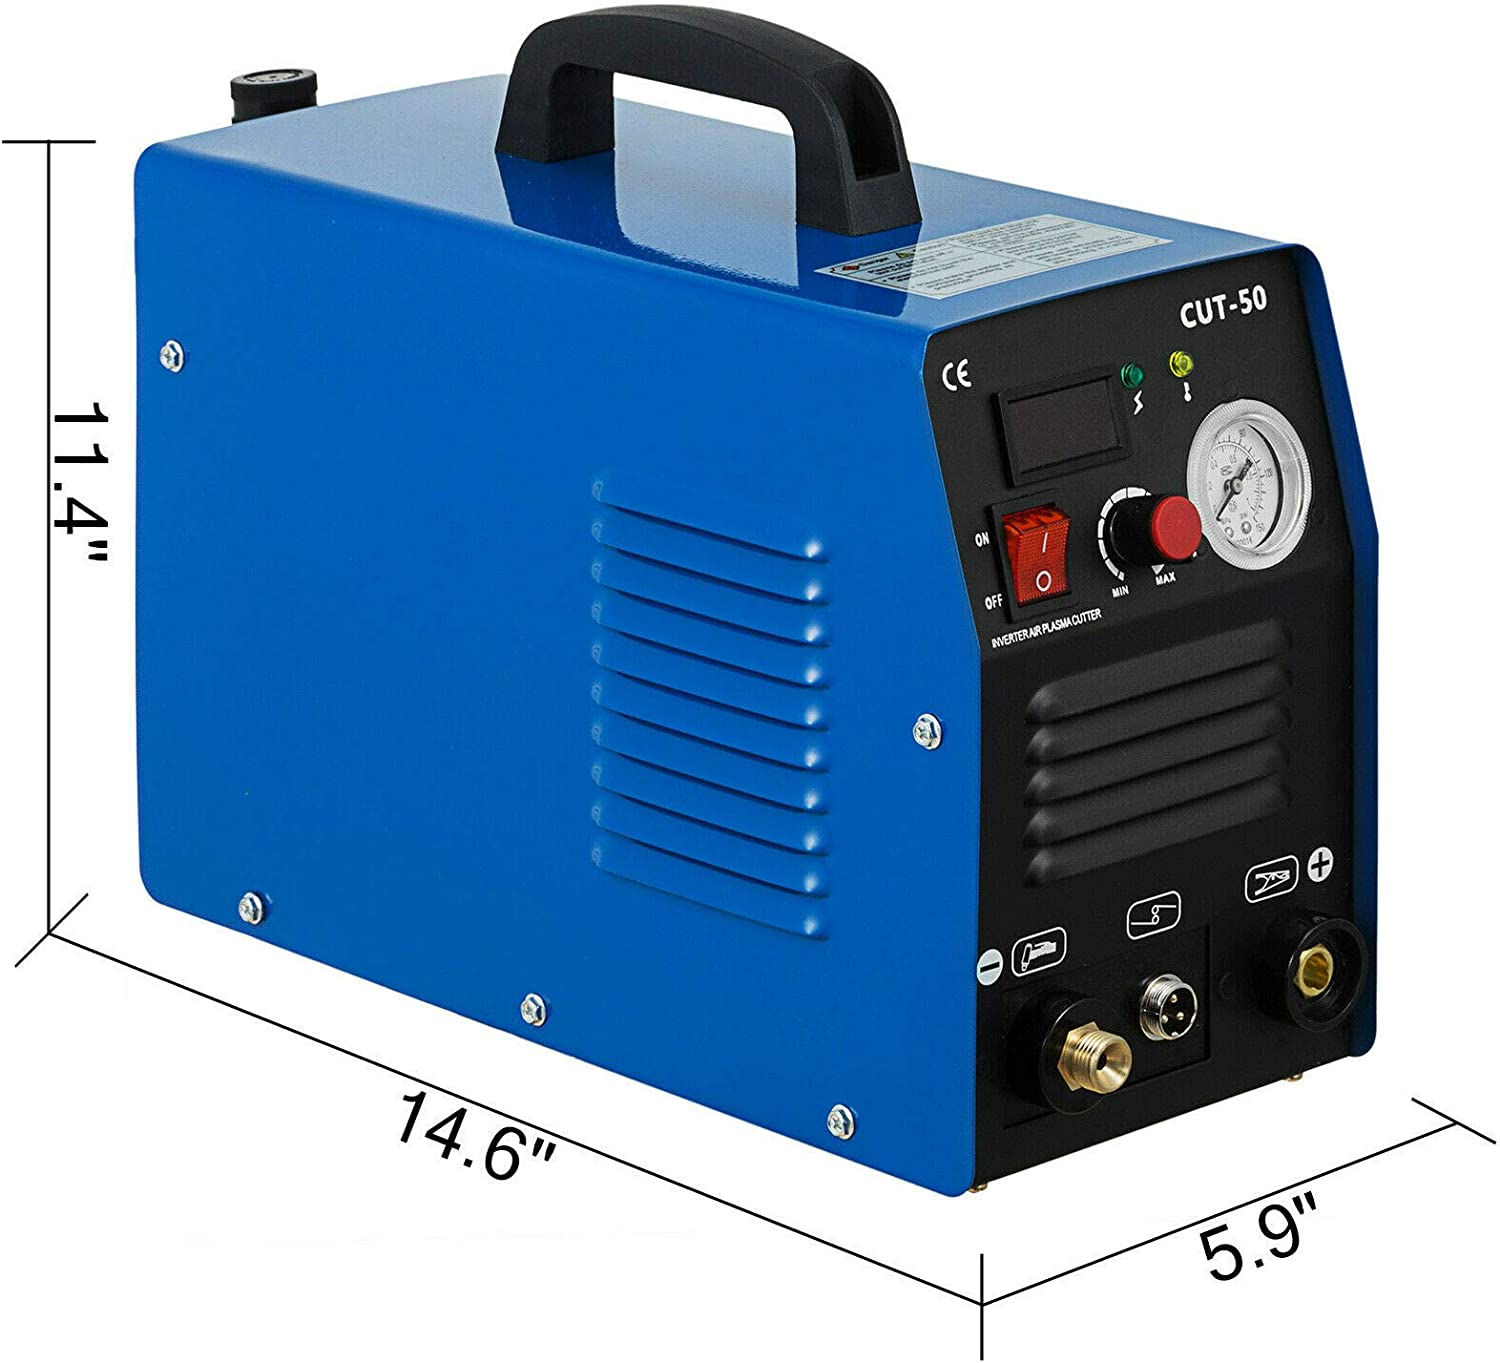 CUT50 Welding Cutting Machine Digital Inverter Dual Voltage 110//220V YiiYYaa 50 AMP Plasma Cutter